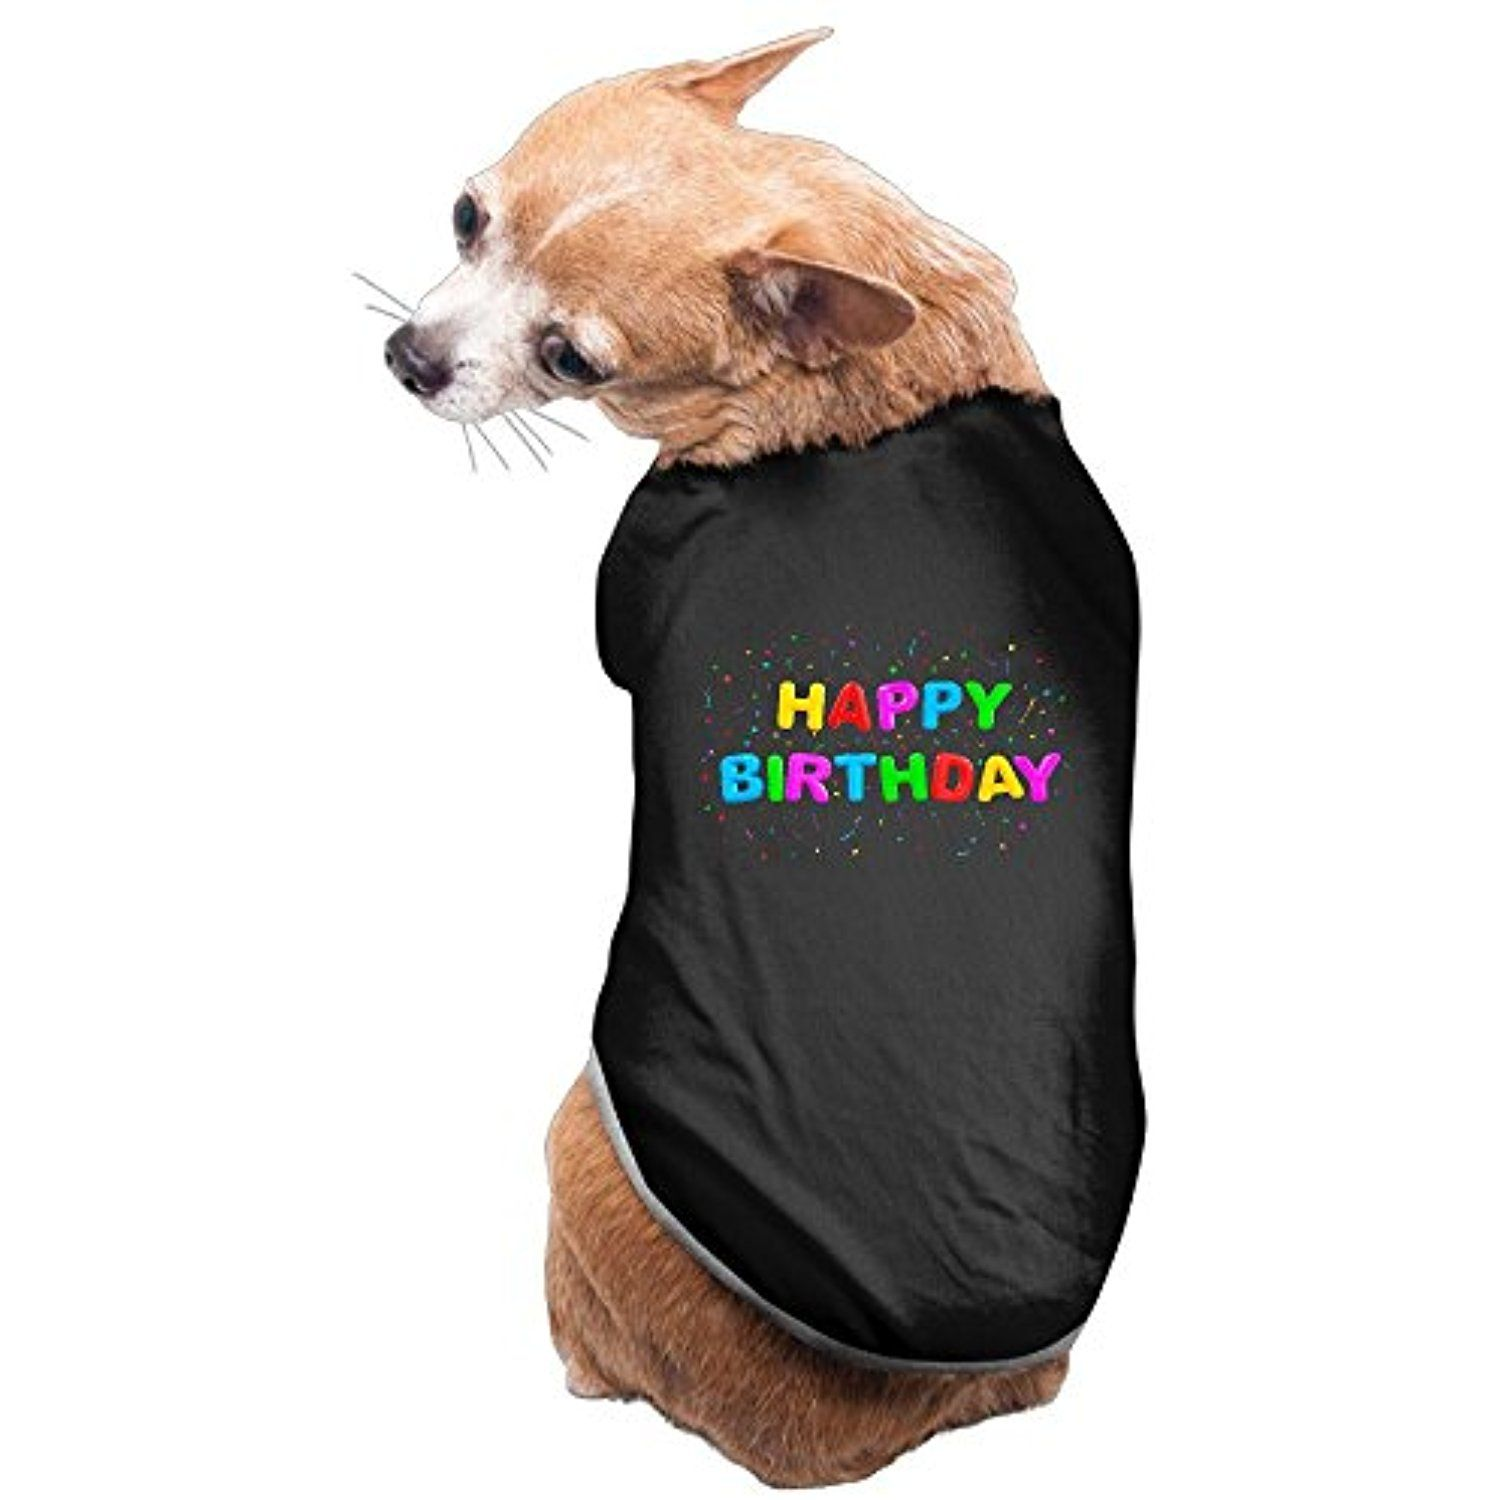 Balloon 3D Happy Birthday Cute Dog Pet Puppy Clothes Outdoor Shirt T 3